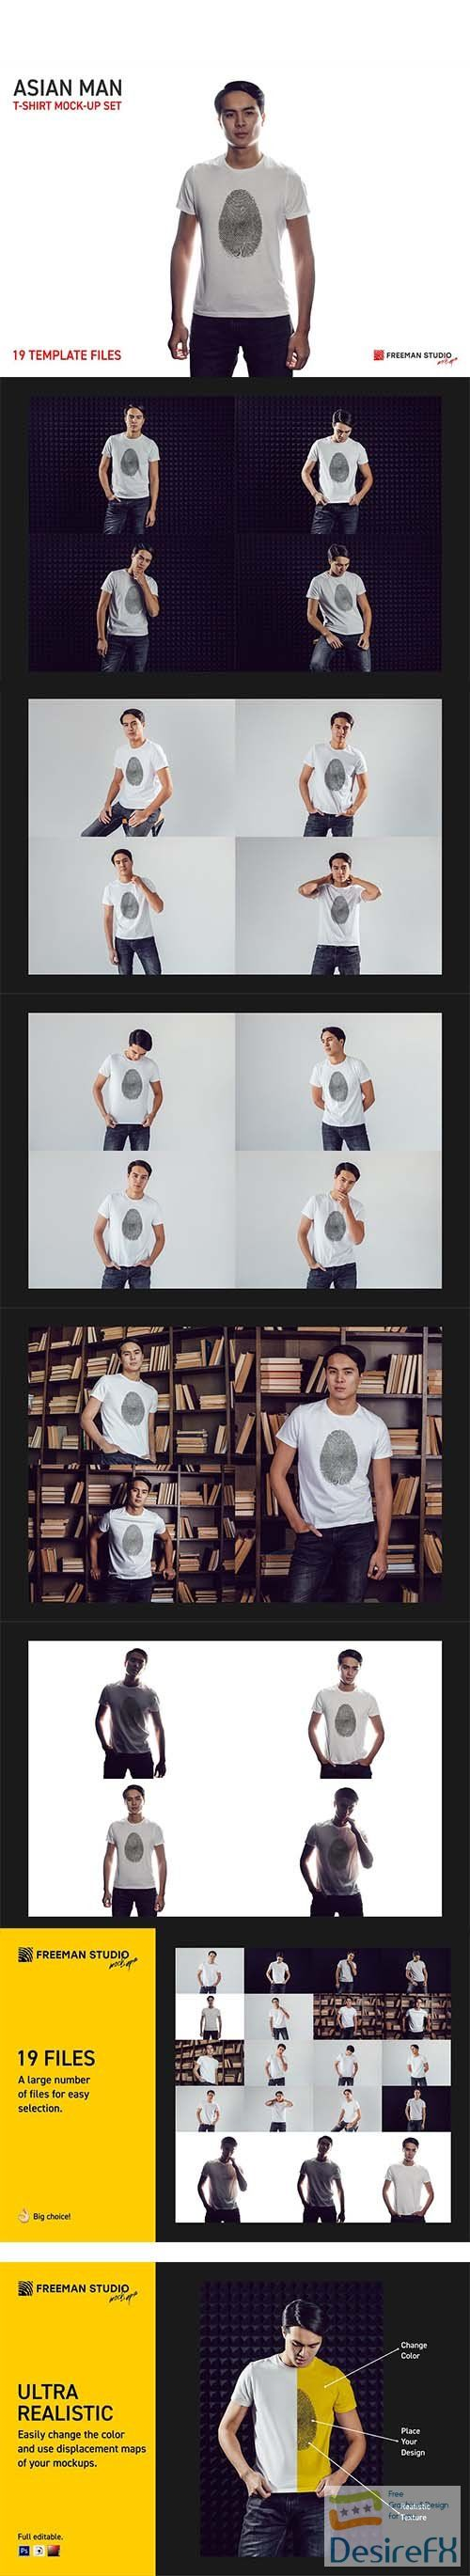 CreativeMarket - Asian Man T-Shirt Mock-Up Set 5728693